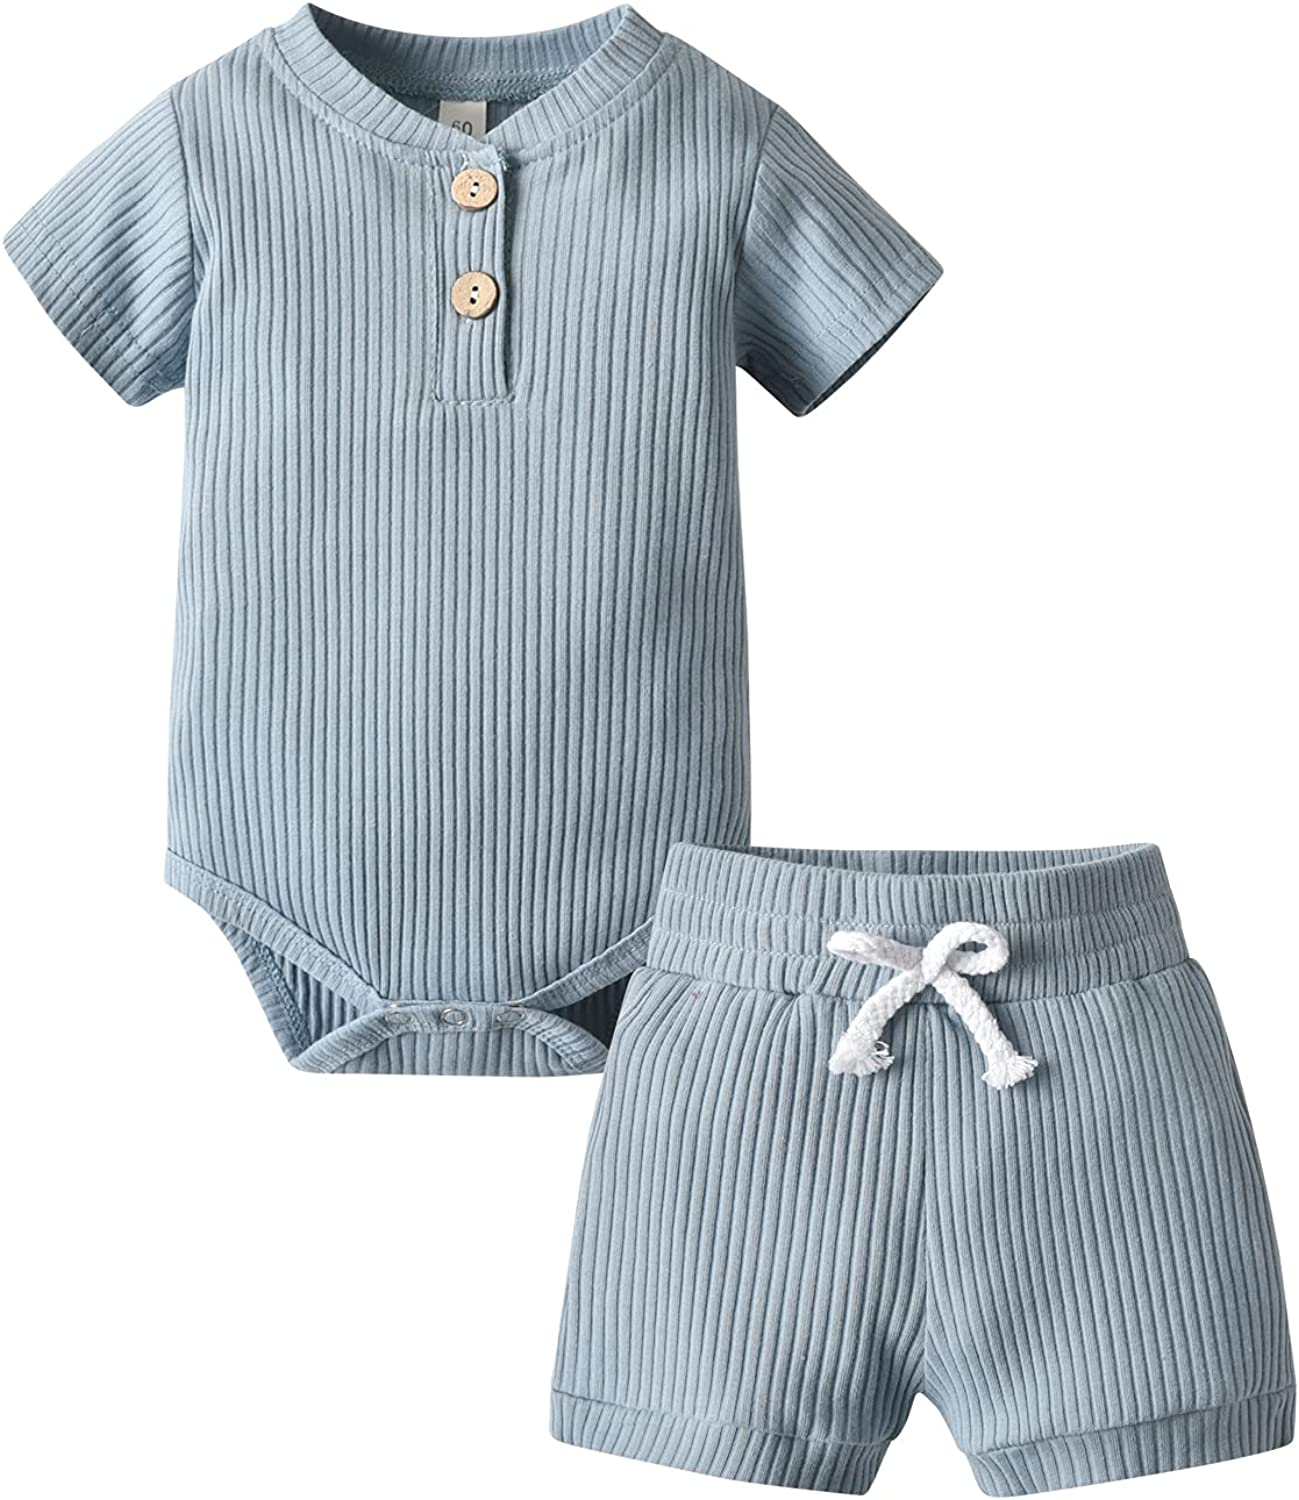 Summer Newborn Baby Boy Girl Clothes Solid Color Ribbed Romper and Shorts Outfits Set